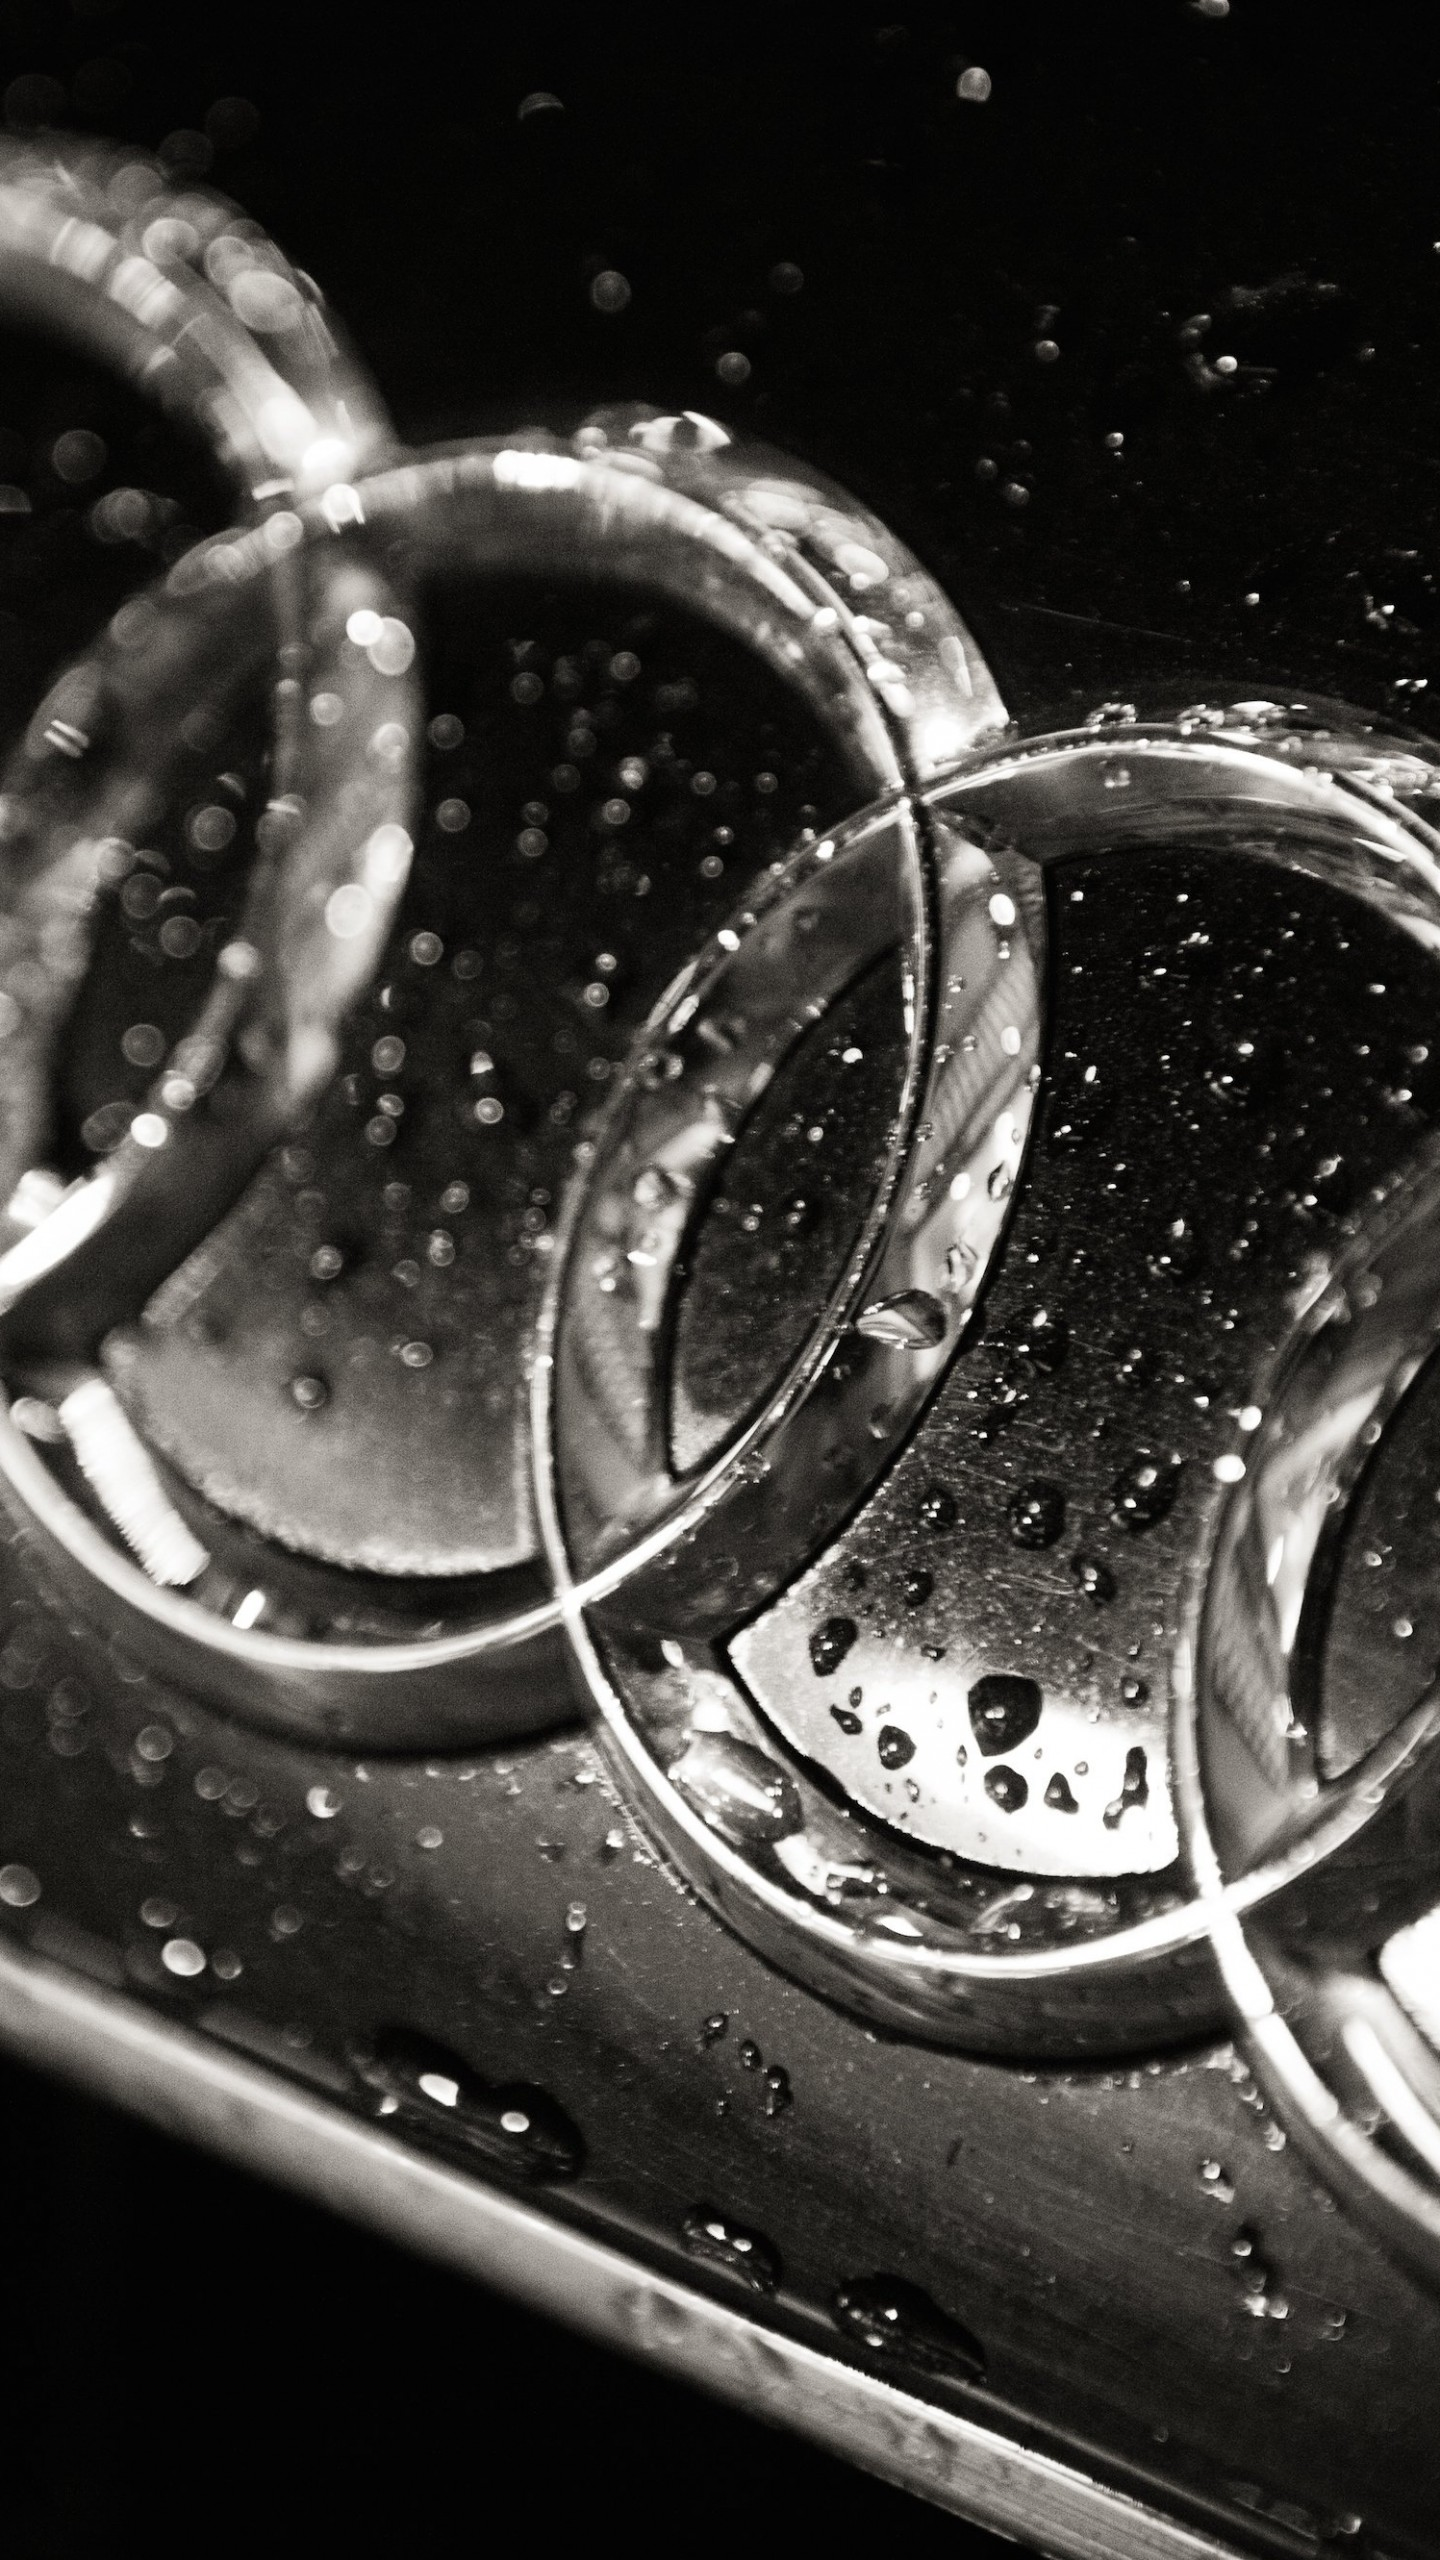 Audi Logo in Black & White Wallpaper for LG G3